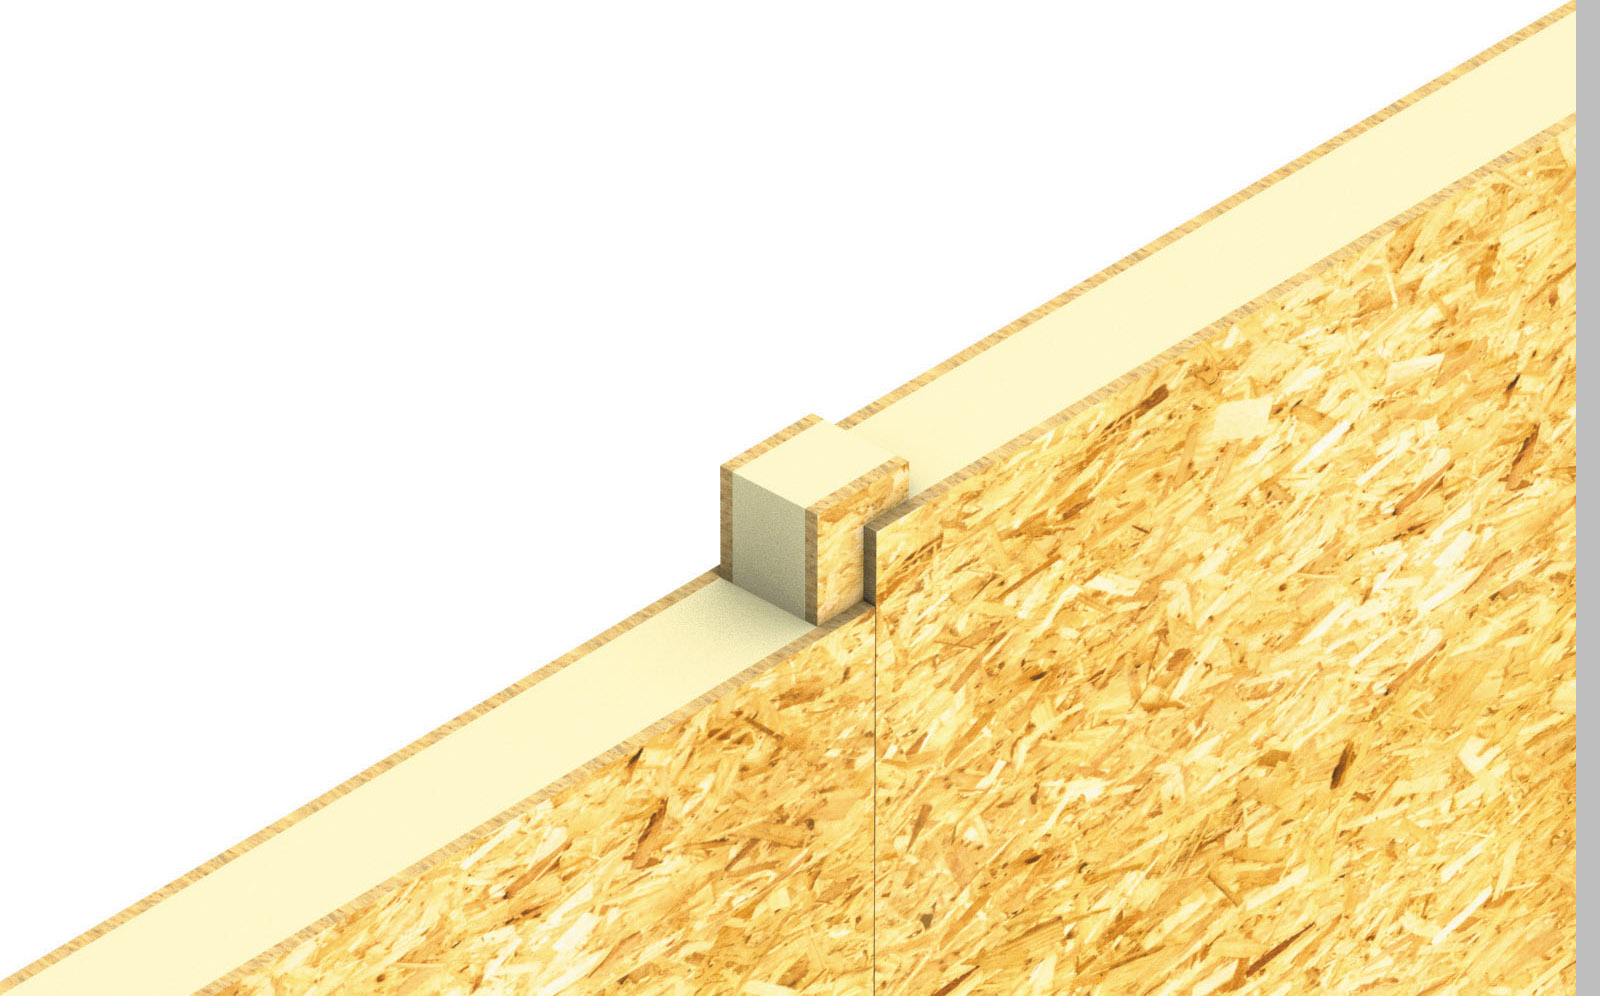 A three dimensional view of the joint between two timber panels